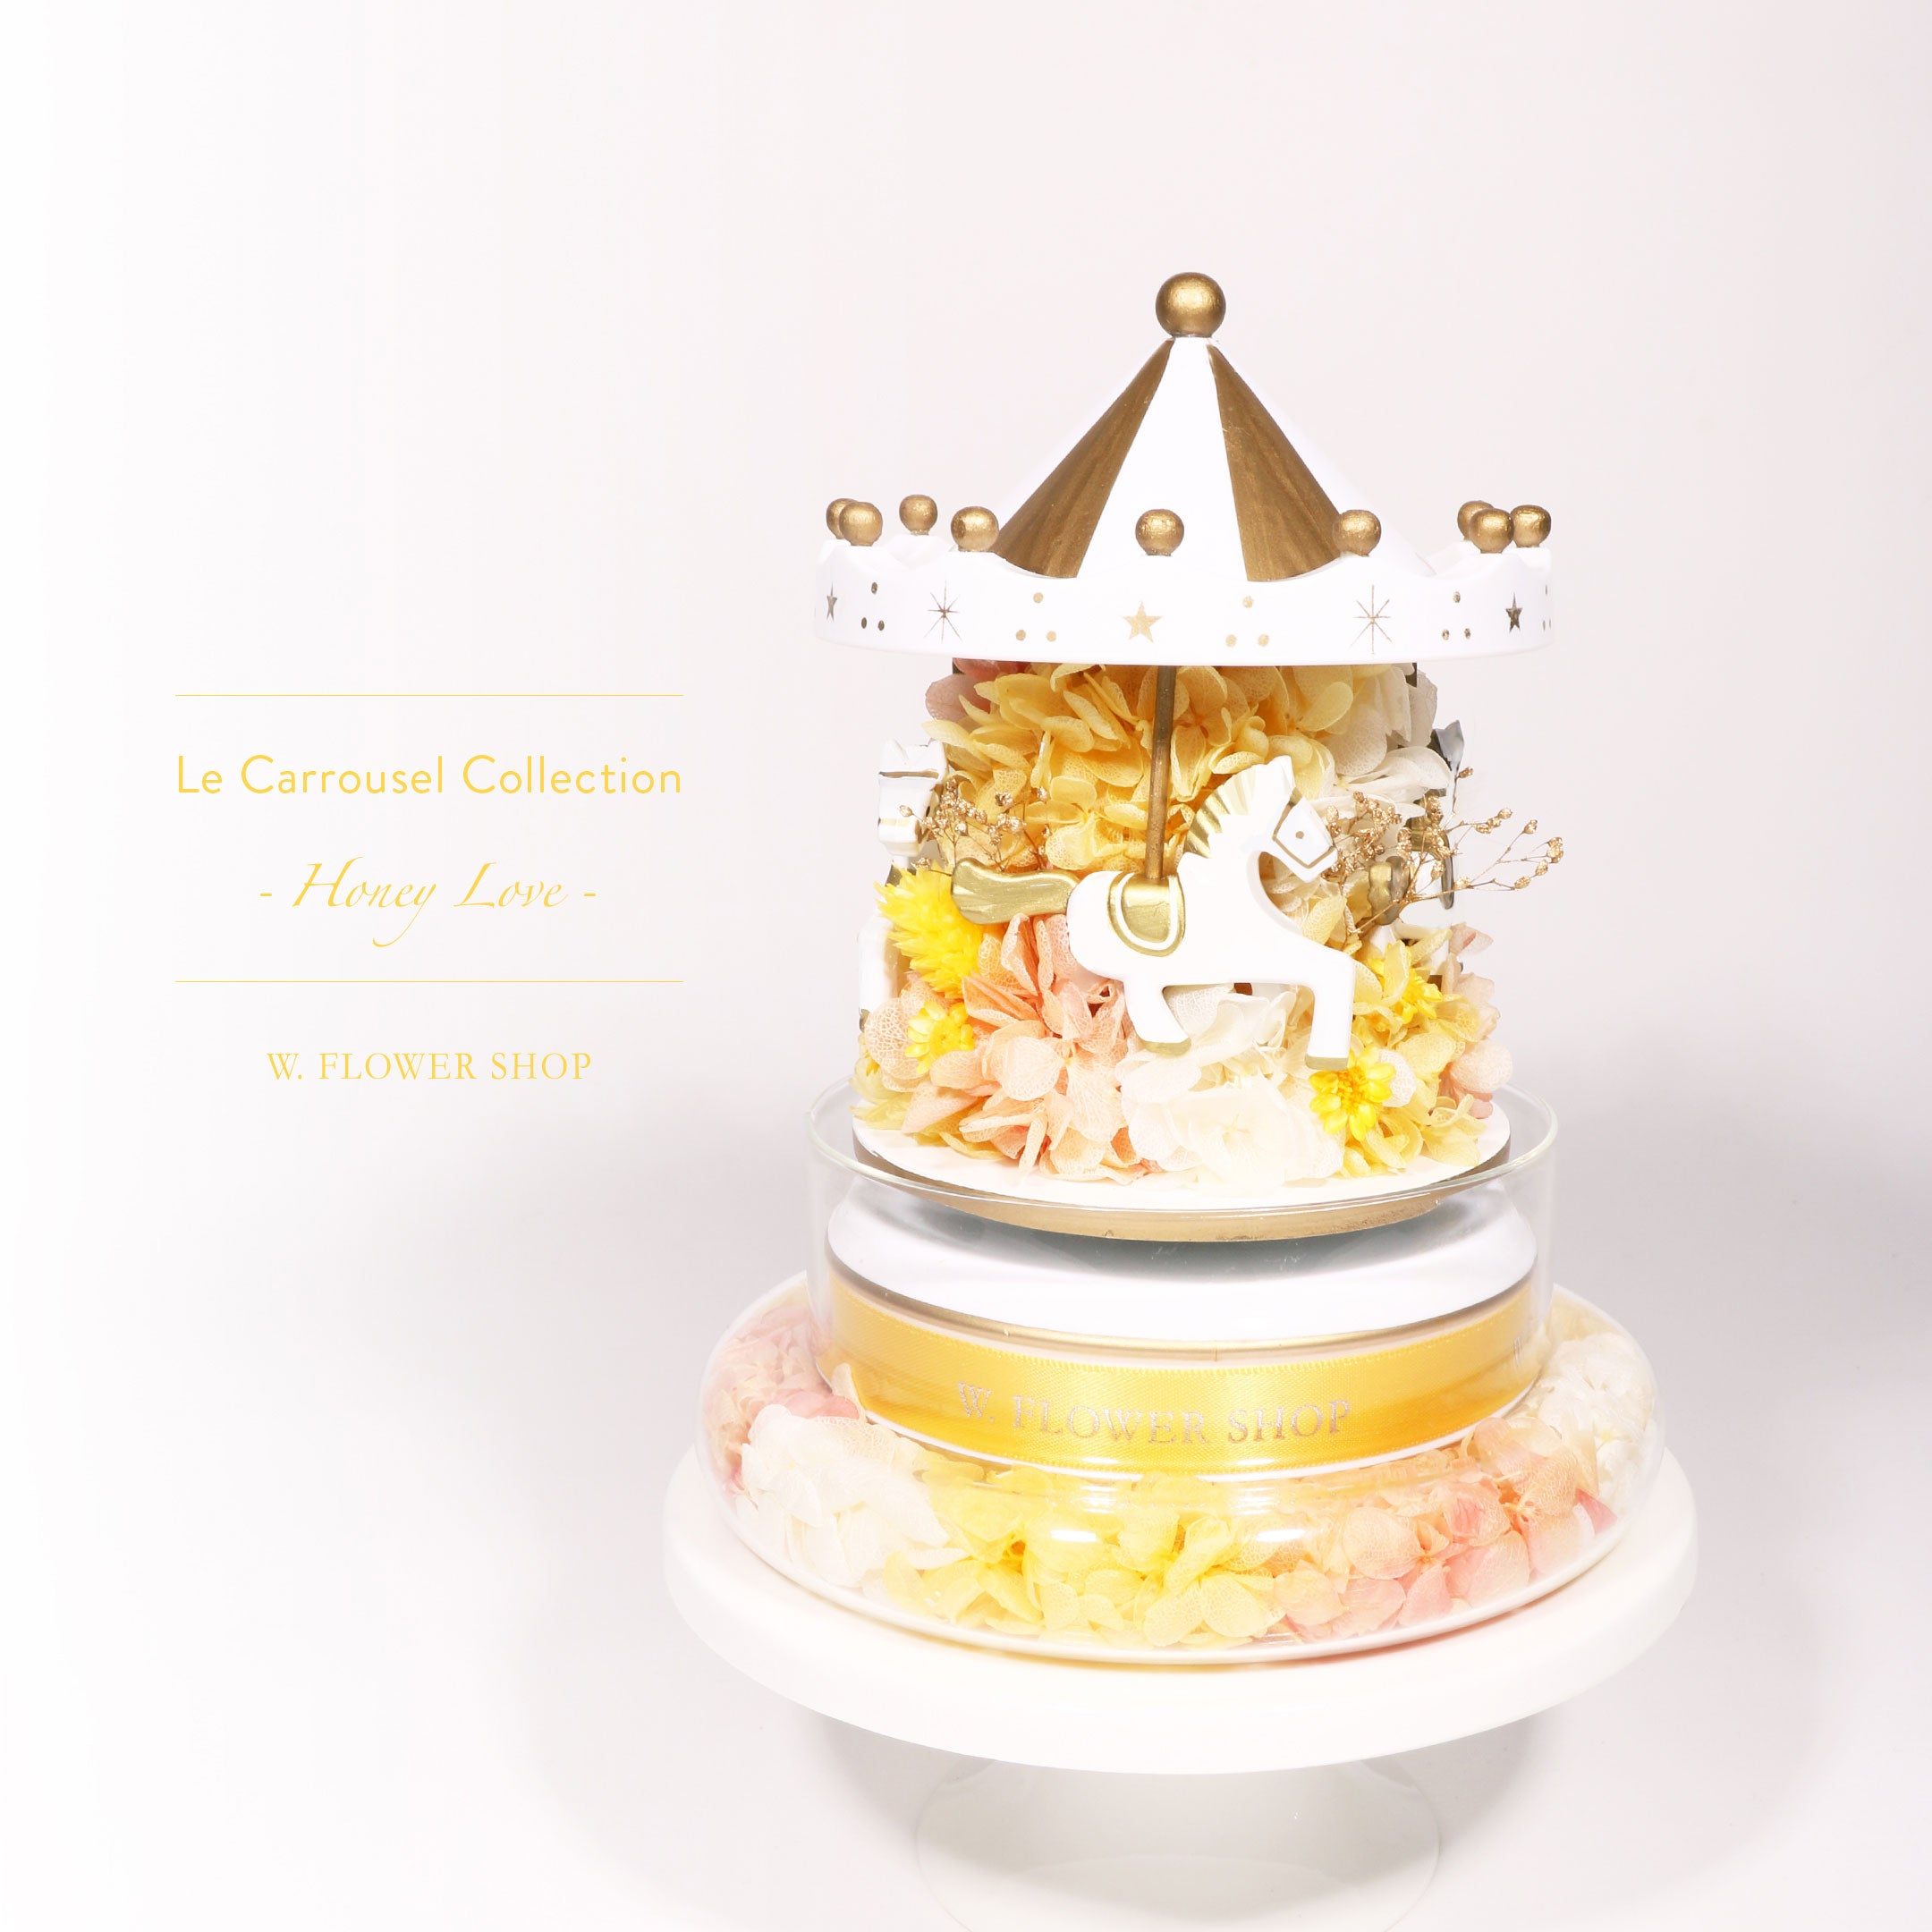 Le Carrousel Collection - Honey Love